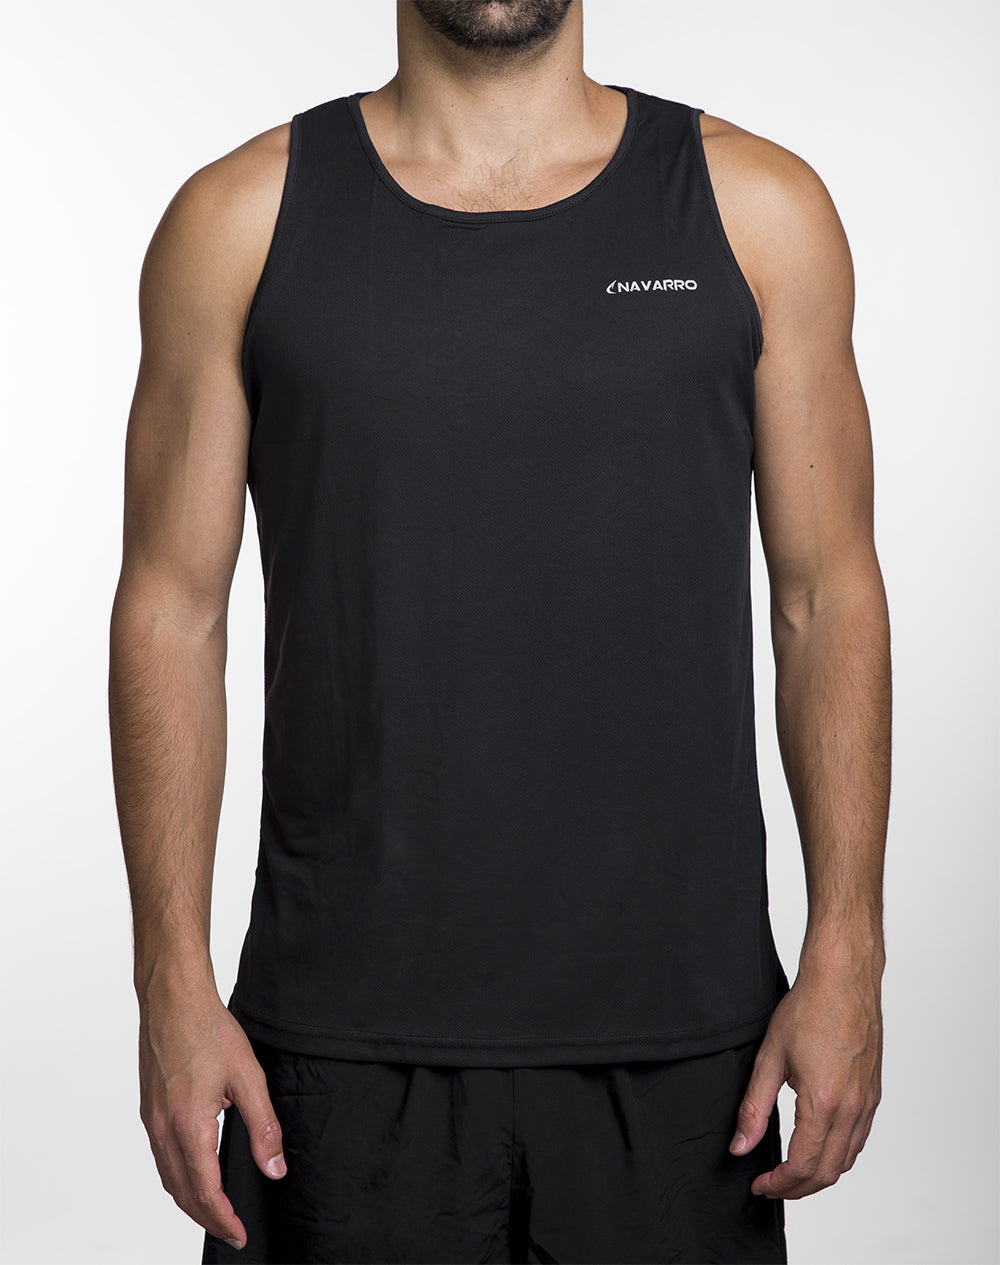 Running Lightweight Tank Top Black גופית ריצה